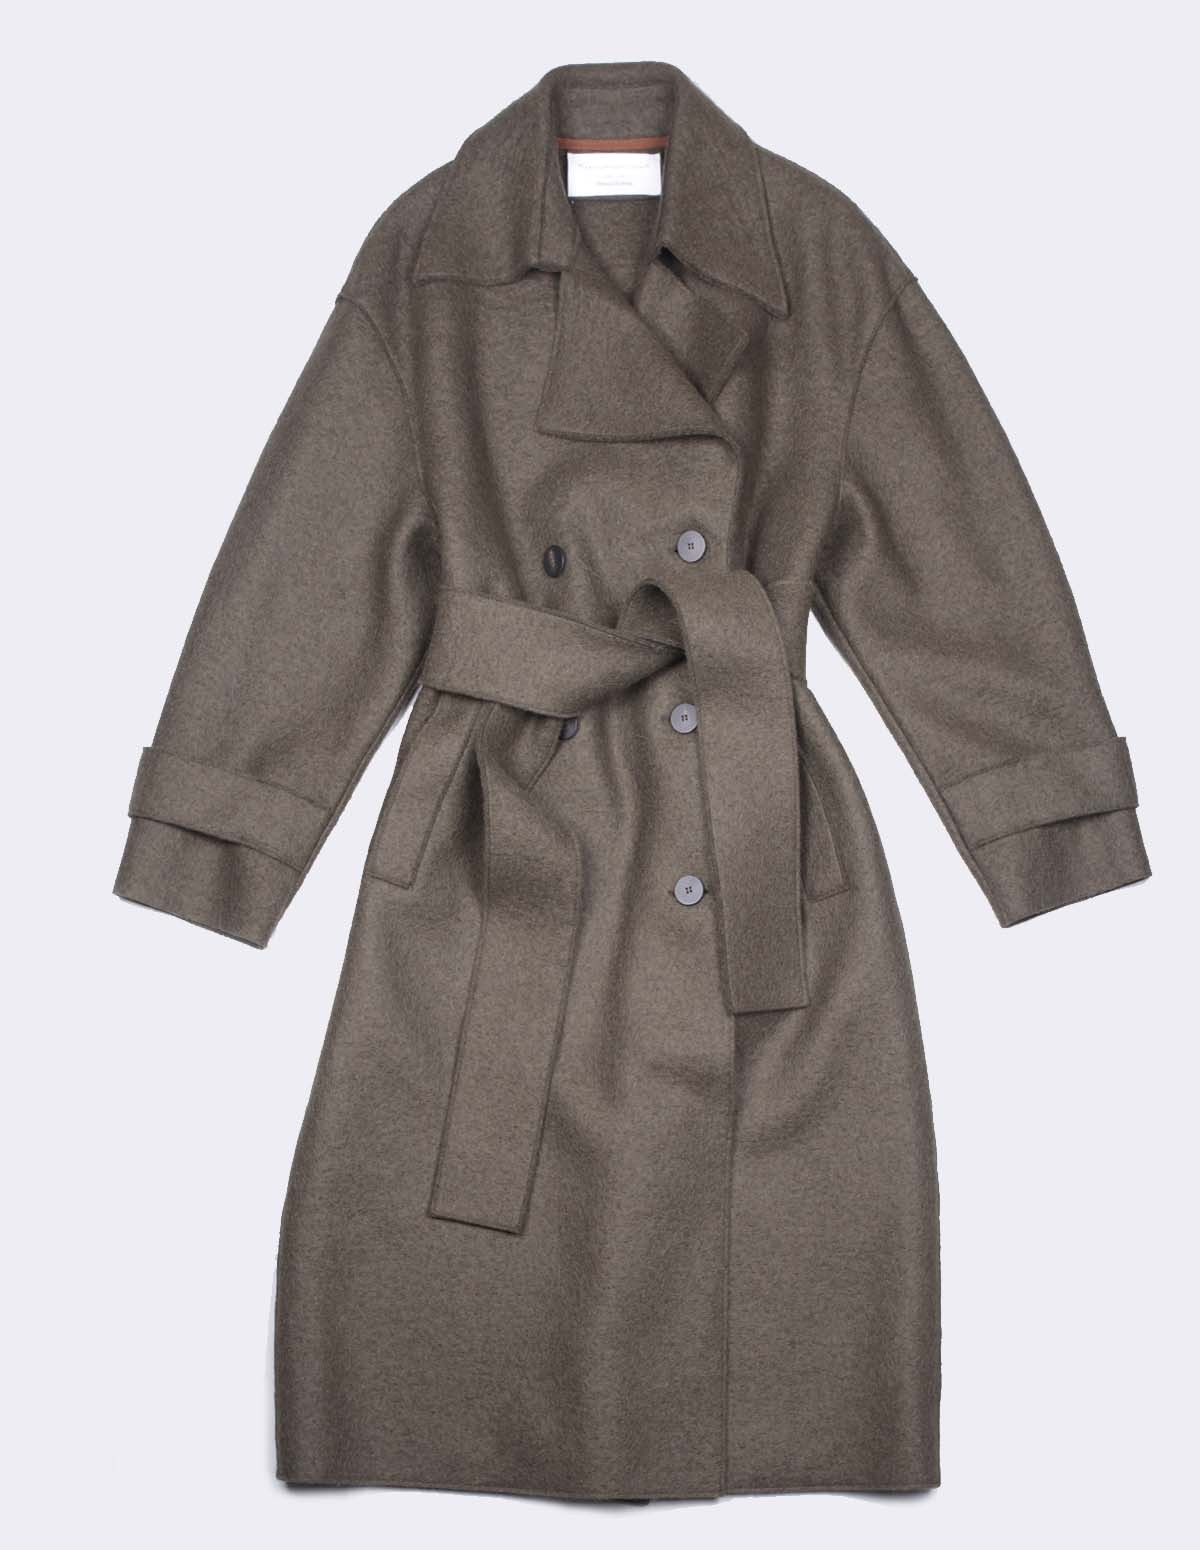 Hwl Oversized Trench Coat - MOSS GREEN